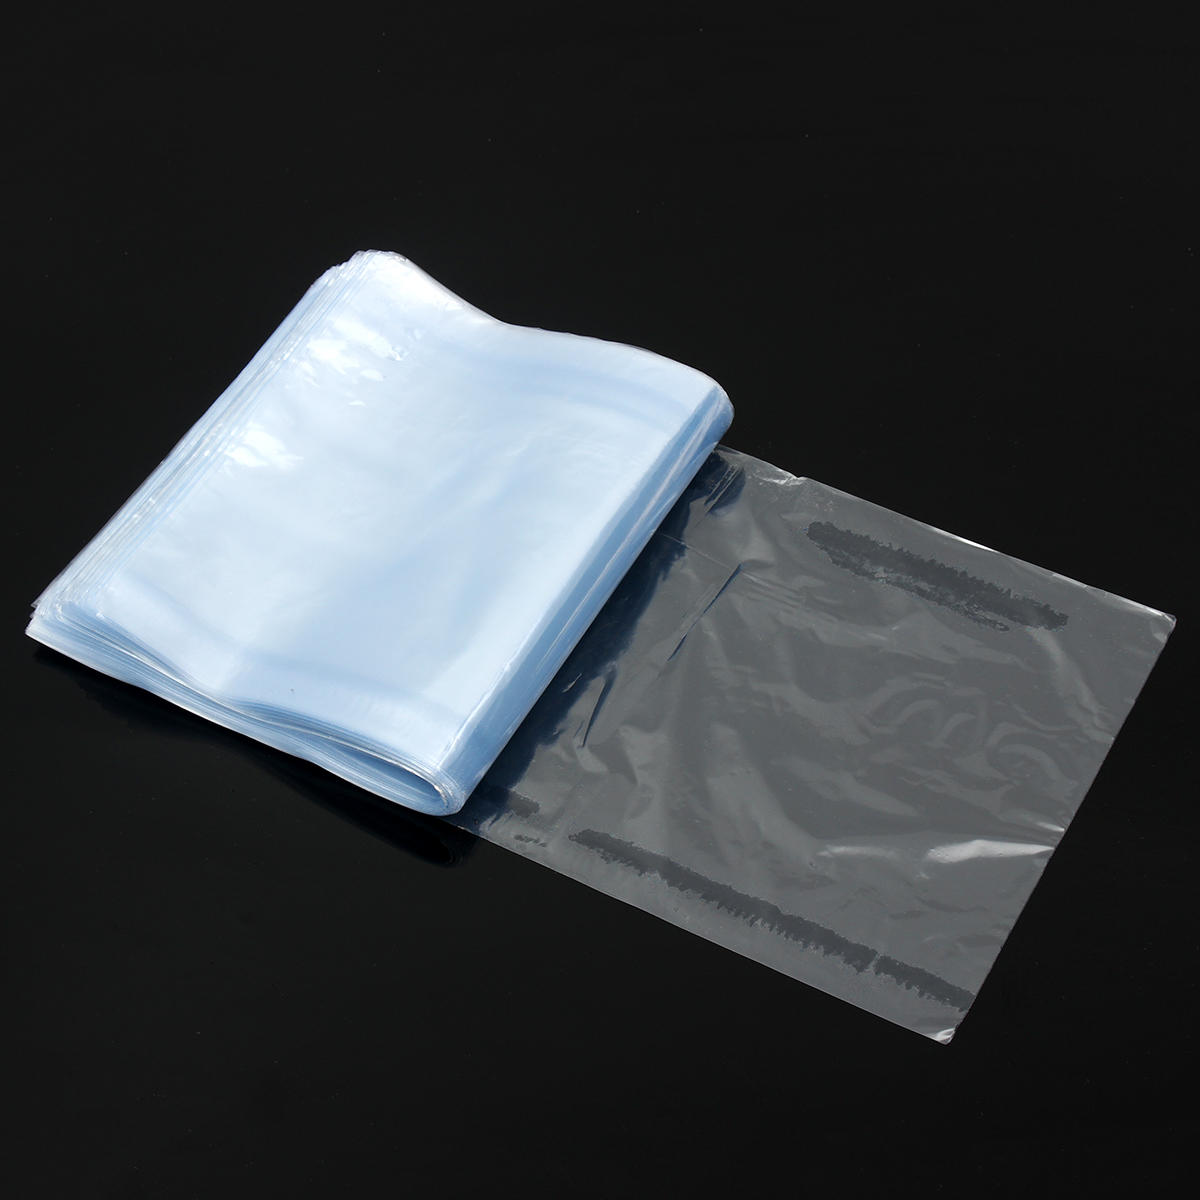 500pcs Pvc Heat Shrink Wrap Bags Film Clear Flat Poly Storage Bag Soap Candles Packaging 15